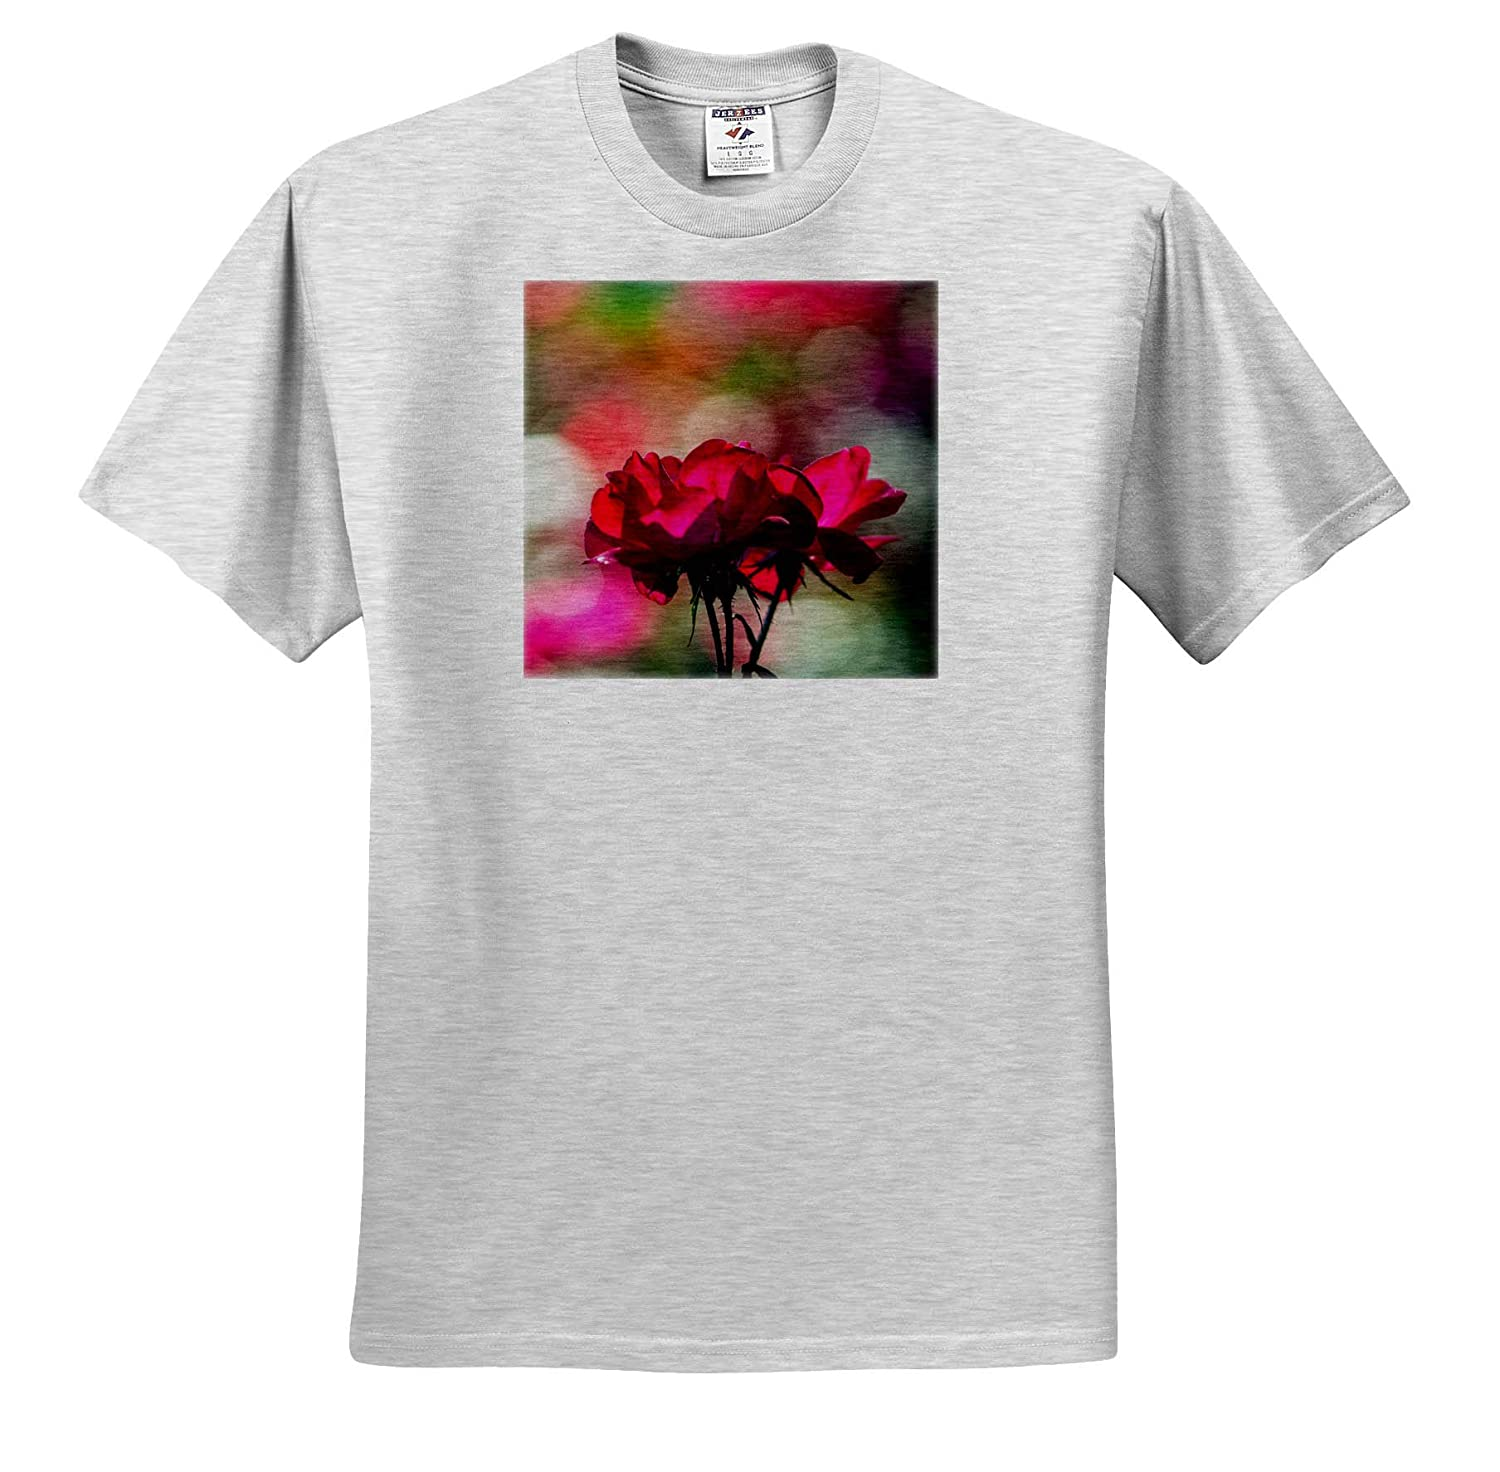 Beautiful Purple Rose Flowers Against The Colorful Blurry Background T-Shirts Flowers Rose 3dRose Alexis Photography